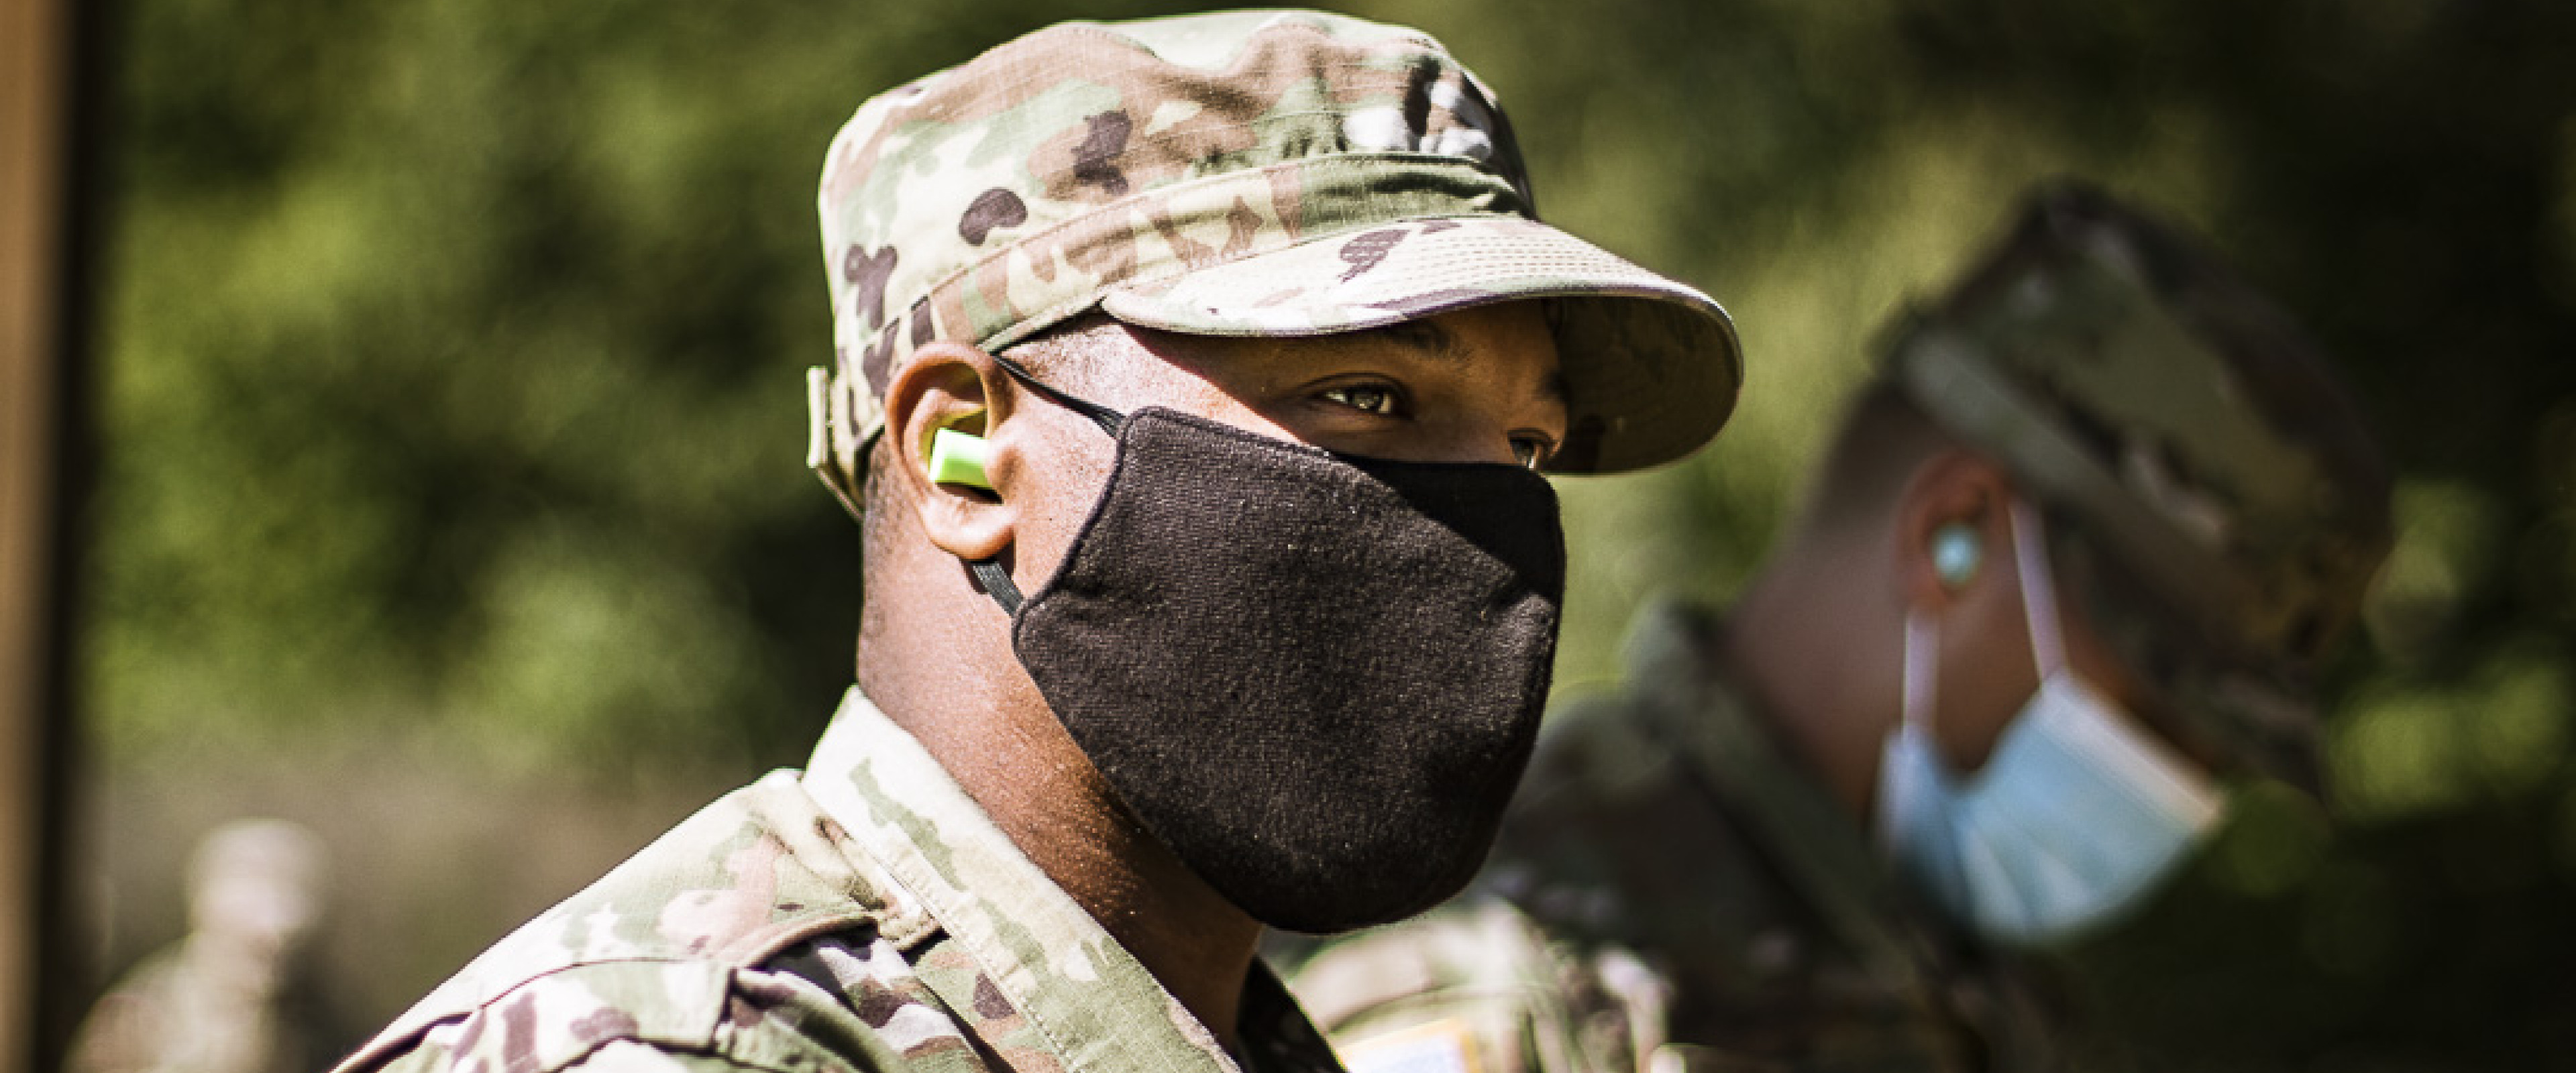 Cadet with mask